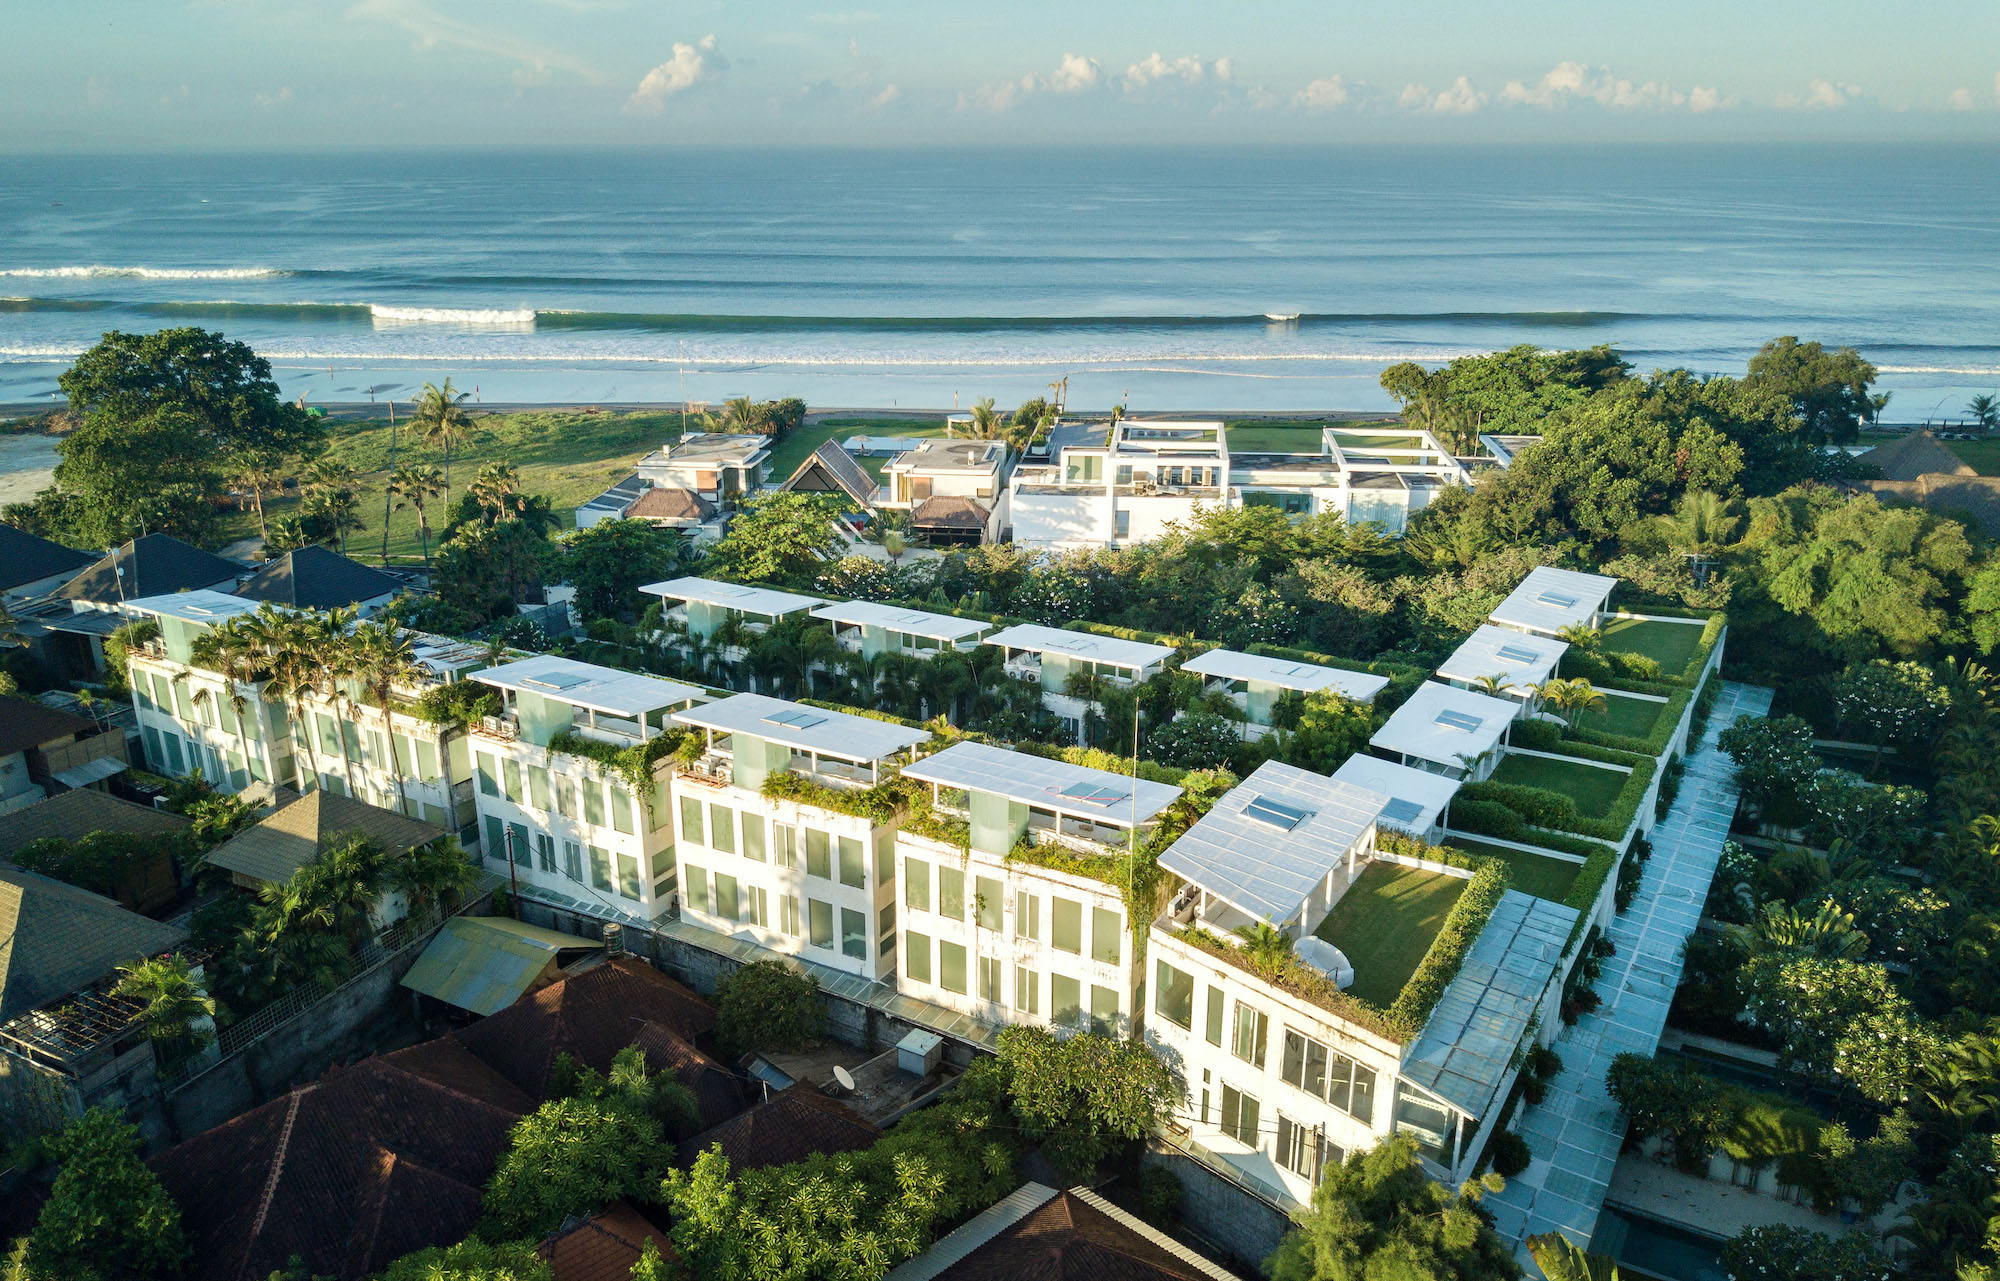 Eden Residence at The Sea Voucher